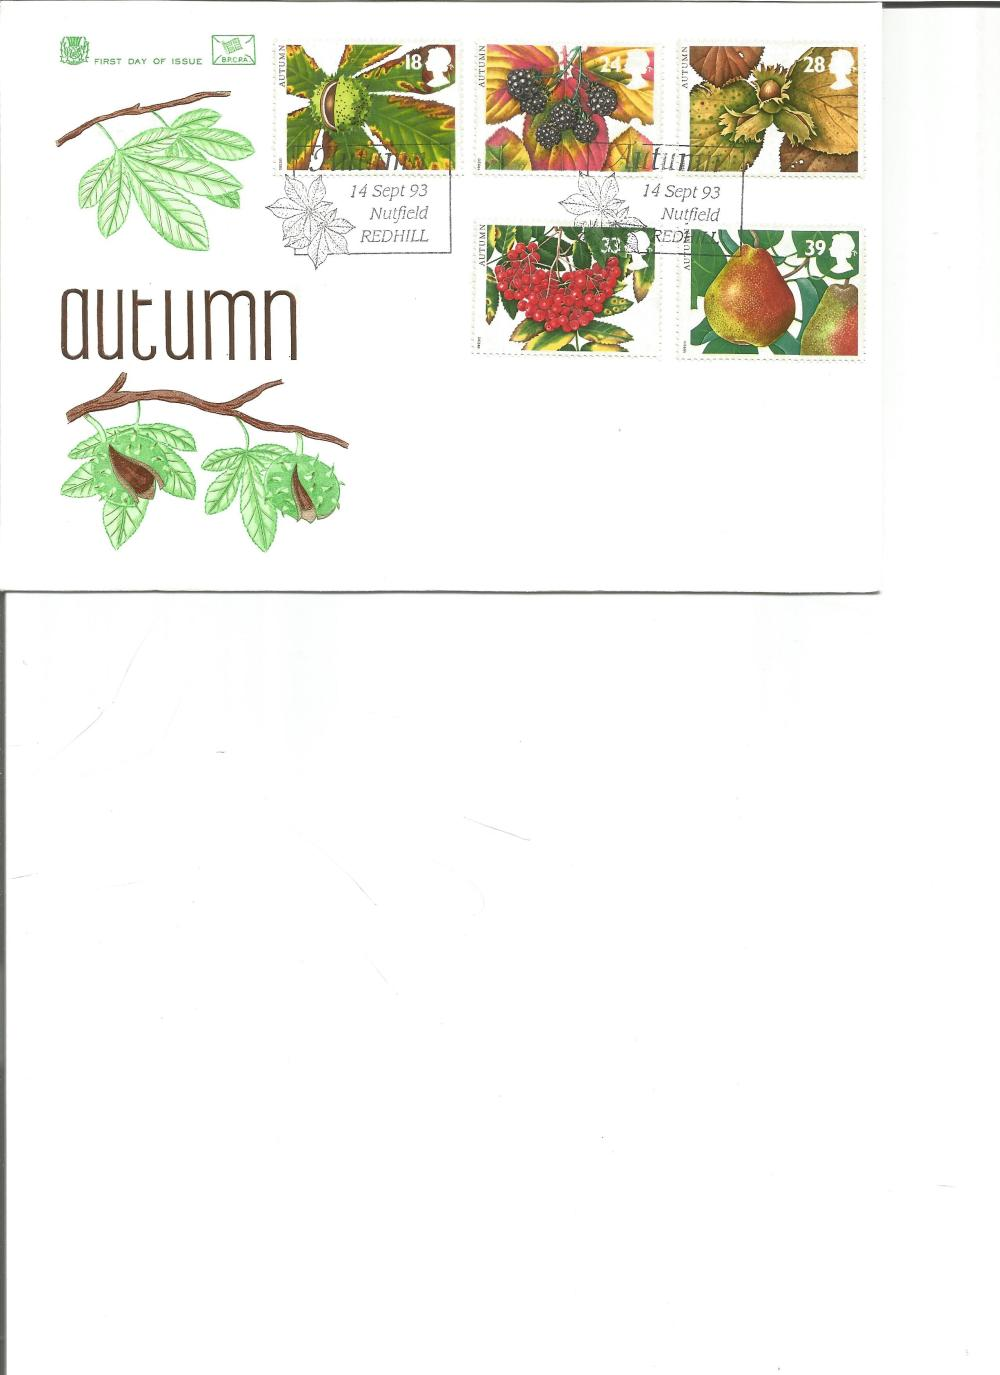 FDC Autumn c/w set of five commemorative stamps double PM Autumn 14 Sept 93 Nutfield, Redhill. We